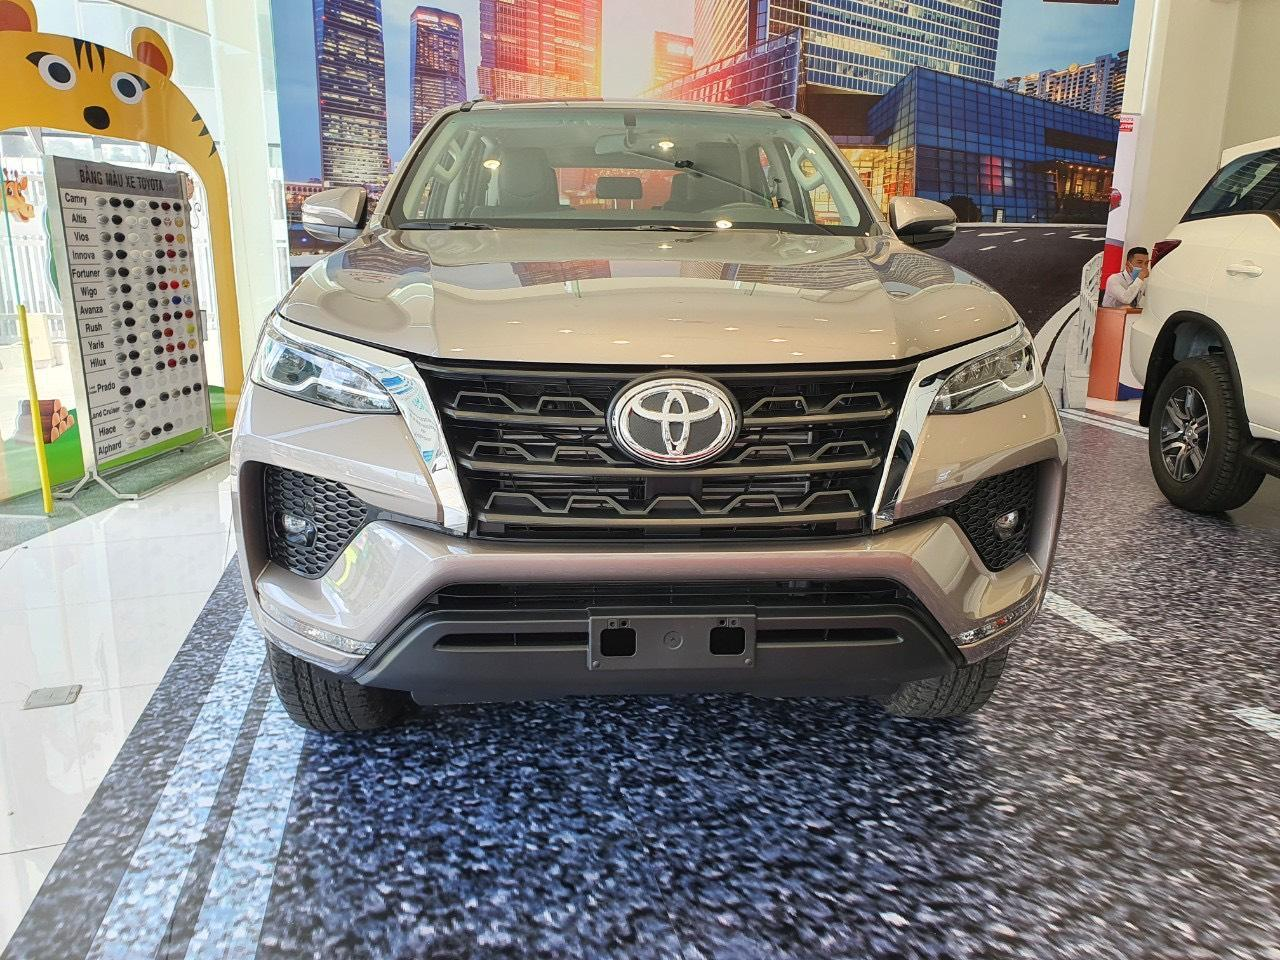 chi tiet xe toyota fortuner 2 8at 4x4 2021 giaxehoi vn 8 - Chi tiết xe Toyota Fortuner 2.8AT 4×4 2021 – Không thực sự đáng mua?